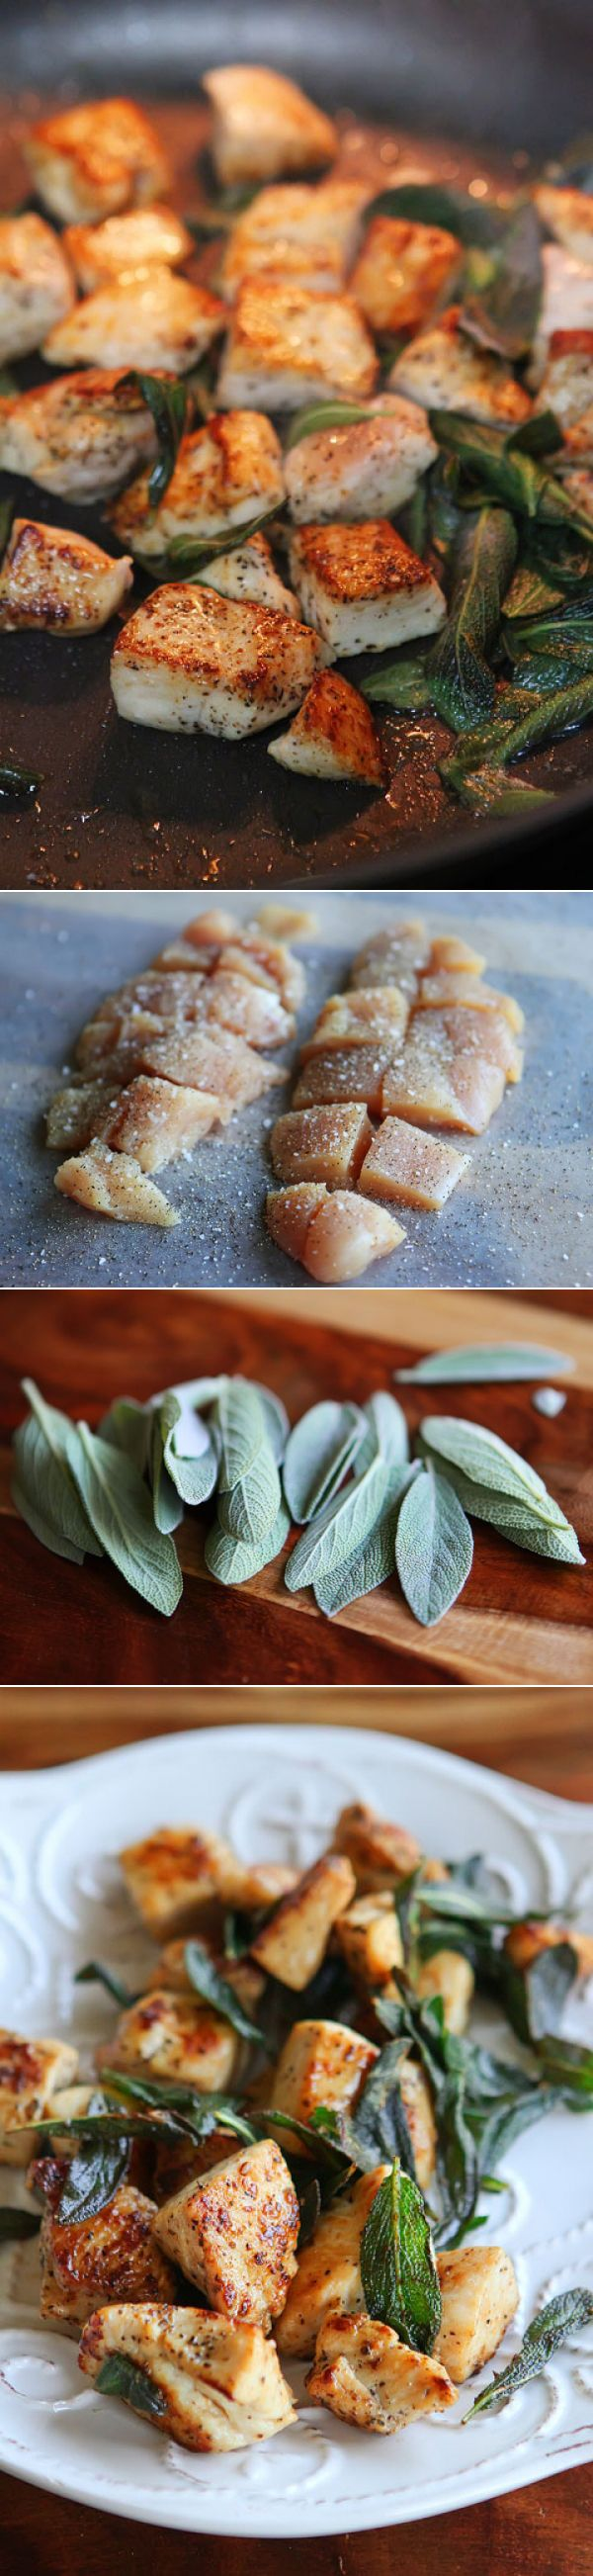 5-Minute Brown Butter Chicken and Crispy Sage by kevinandamanda: Great for quick dinners. Here is the link http://www.kevinandamanda.com/recipes/dinner/5-minute-brown-butter-chicken-and-crispy-sage.html #Chicken #Sage #Brown_Butter